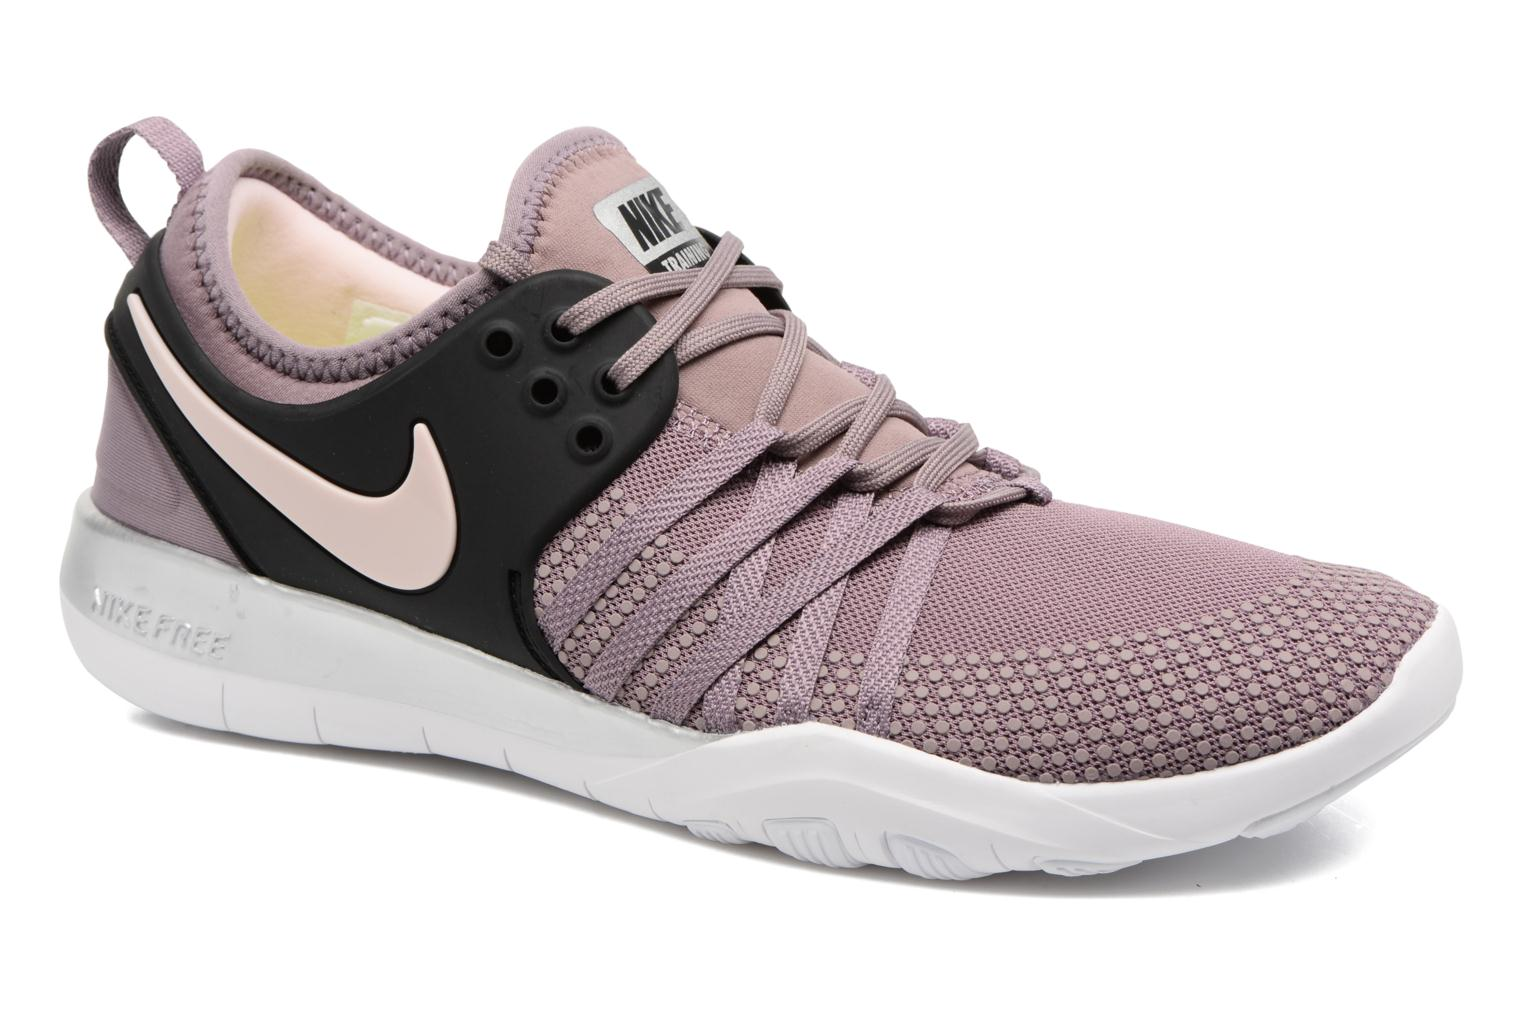 Marques Chaussure femme Nike femme Wmns Nike Free Tr 7 Bionic Taupe Grey/Black-Sunset Tint-Chrome